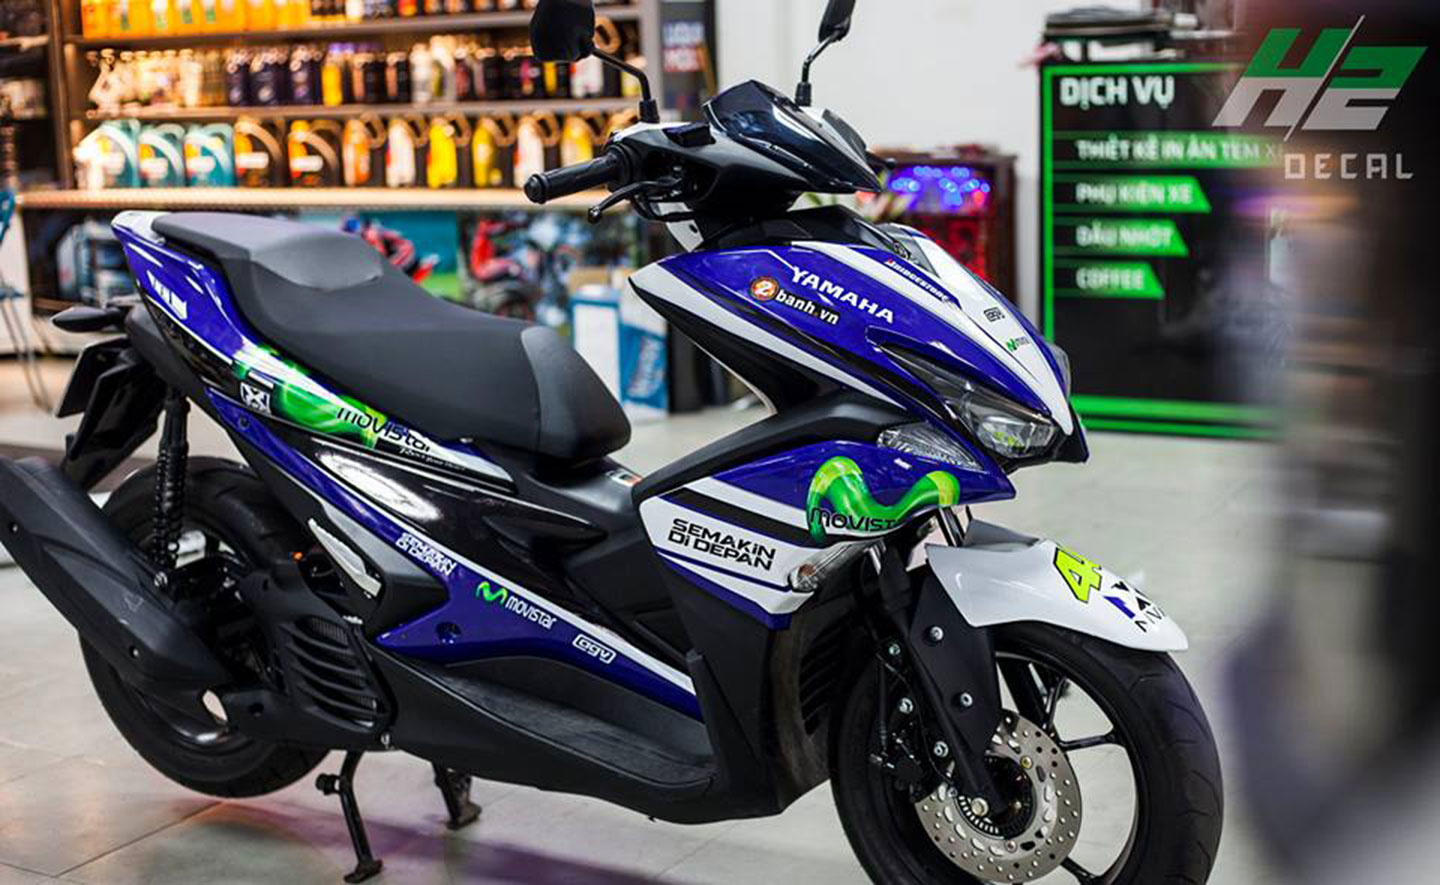 yamaha-nvx-decal-23.jpg